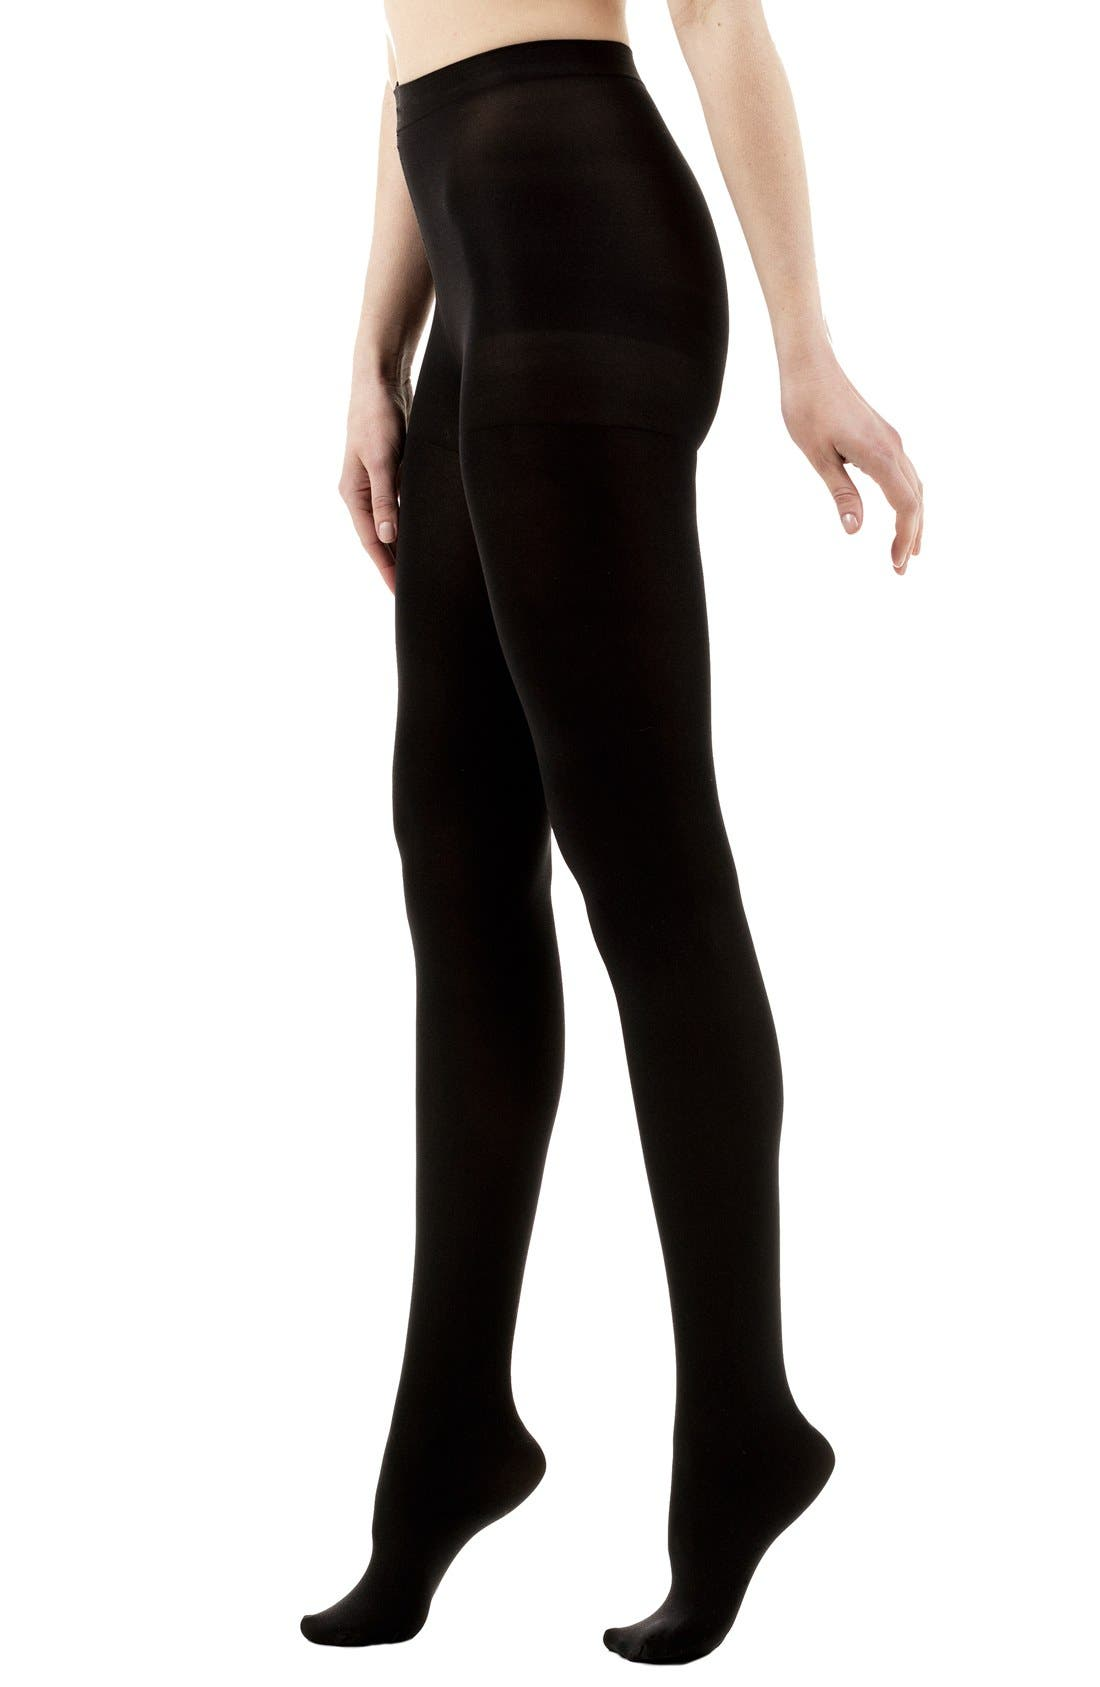 VIM & VIGR Graduated Compression Tights